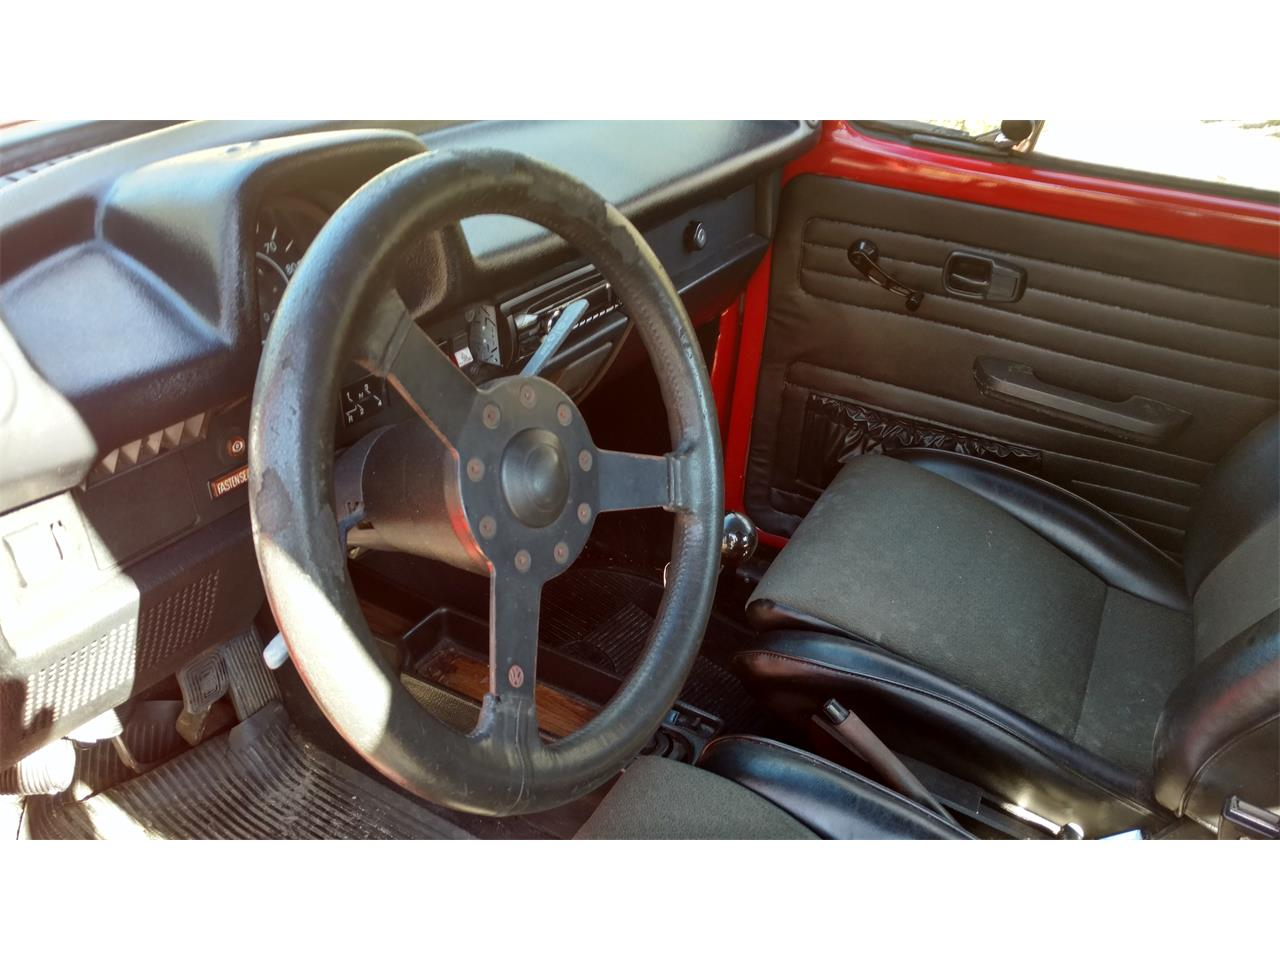 1973 Volkswagen Super Beetle (CC-1319668) for sale in Fuquay-Varina, North Carolina